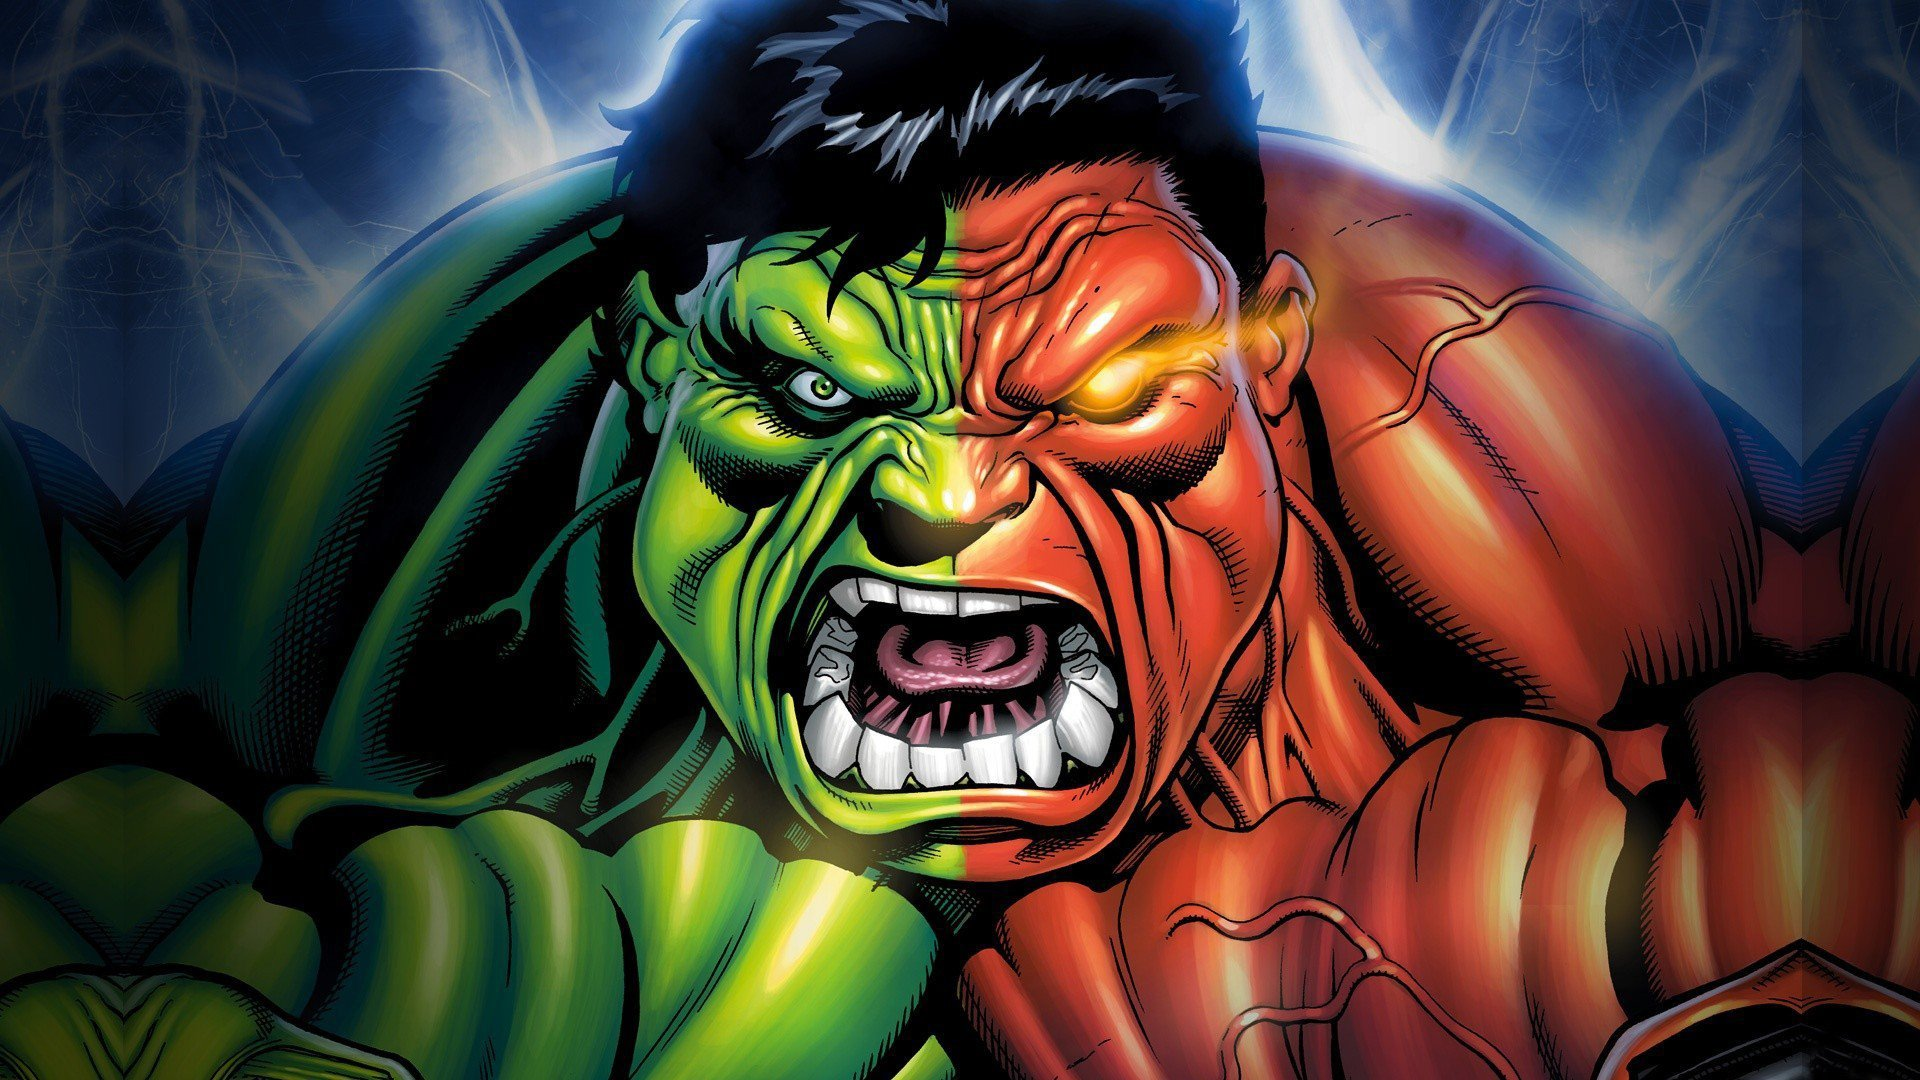 Awesome Hulk Free Wallpaper Id 451593 For Full Hd 1080p Pc